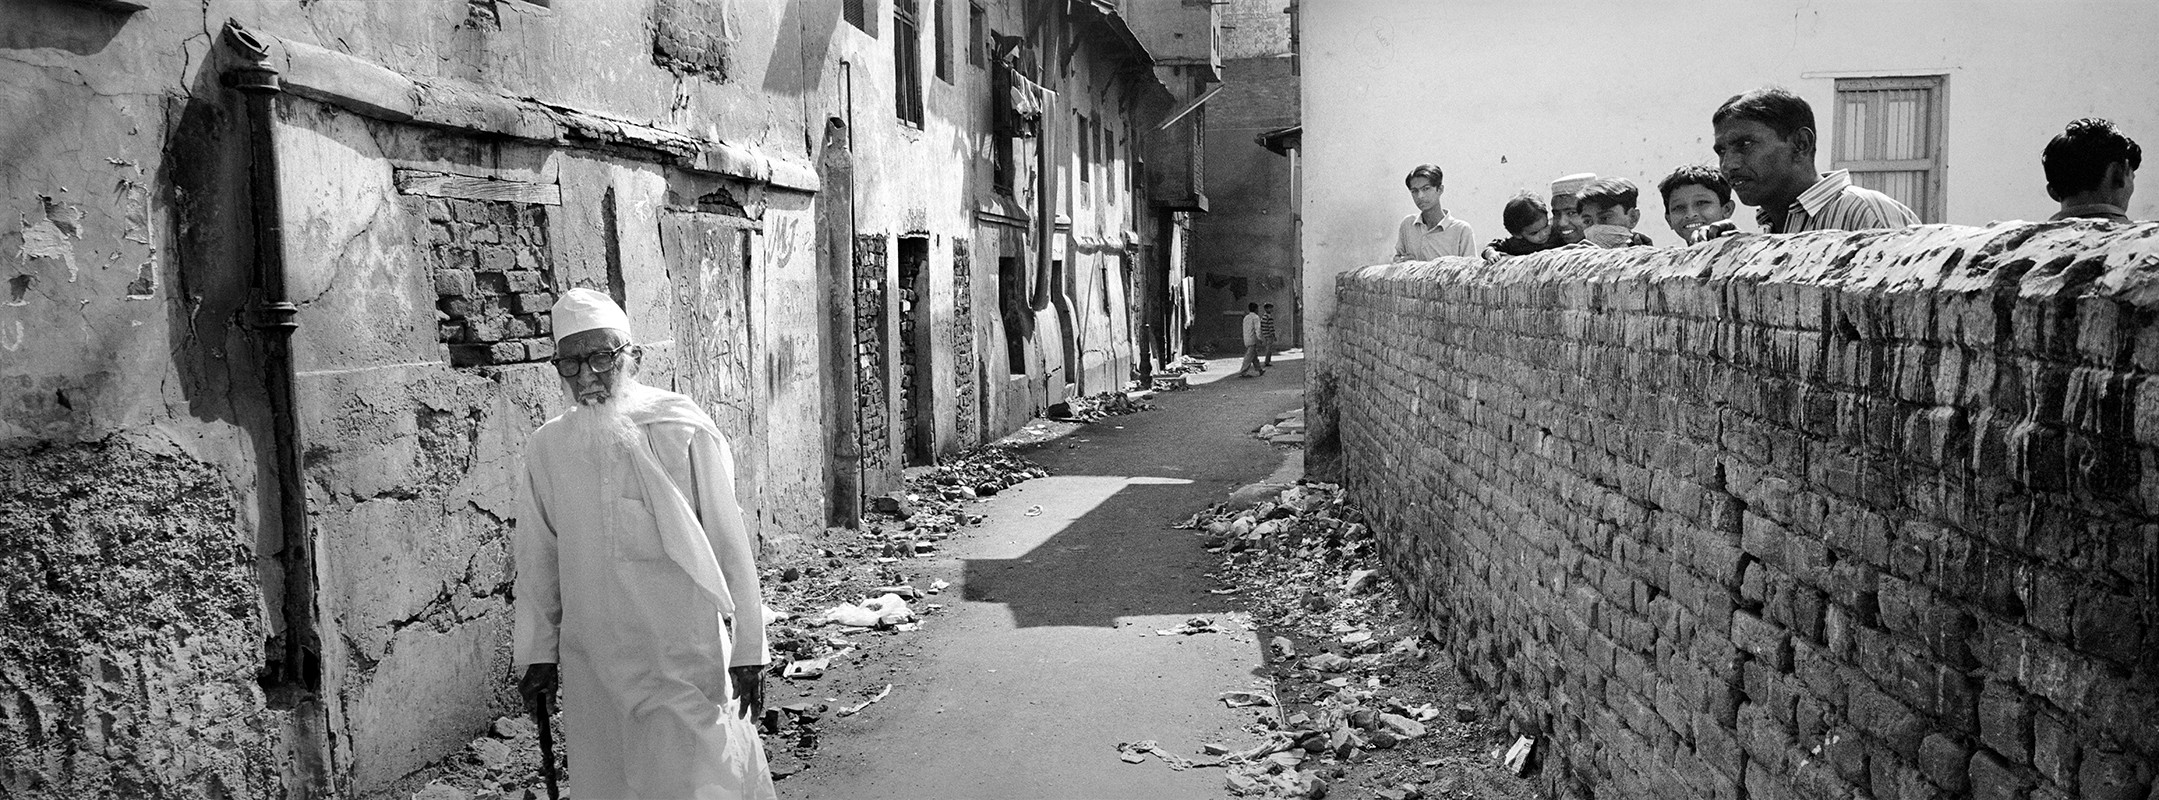 Muslim residents watch as an old man walks past the Wall in Jilaiwada.